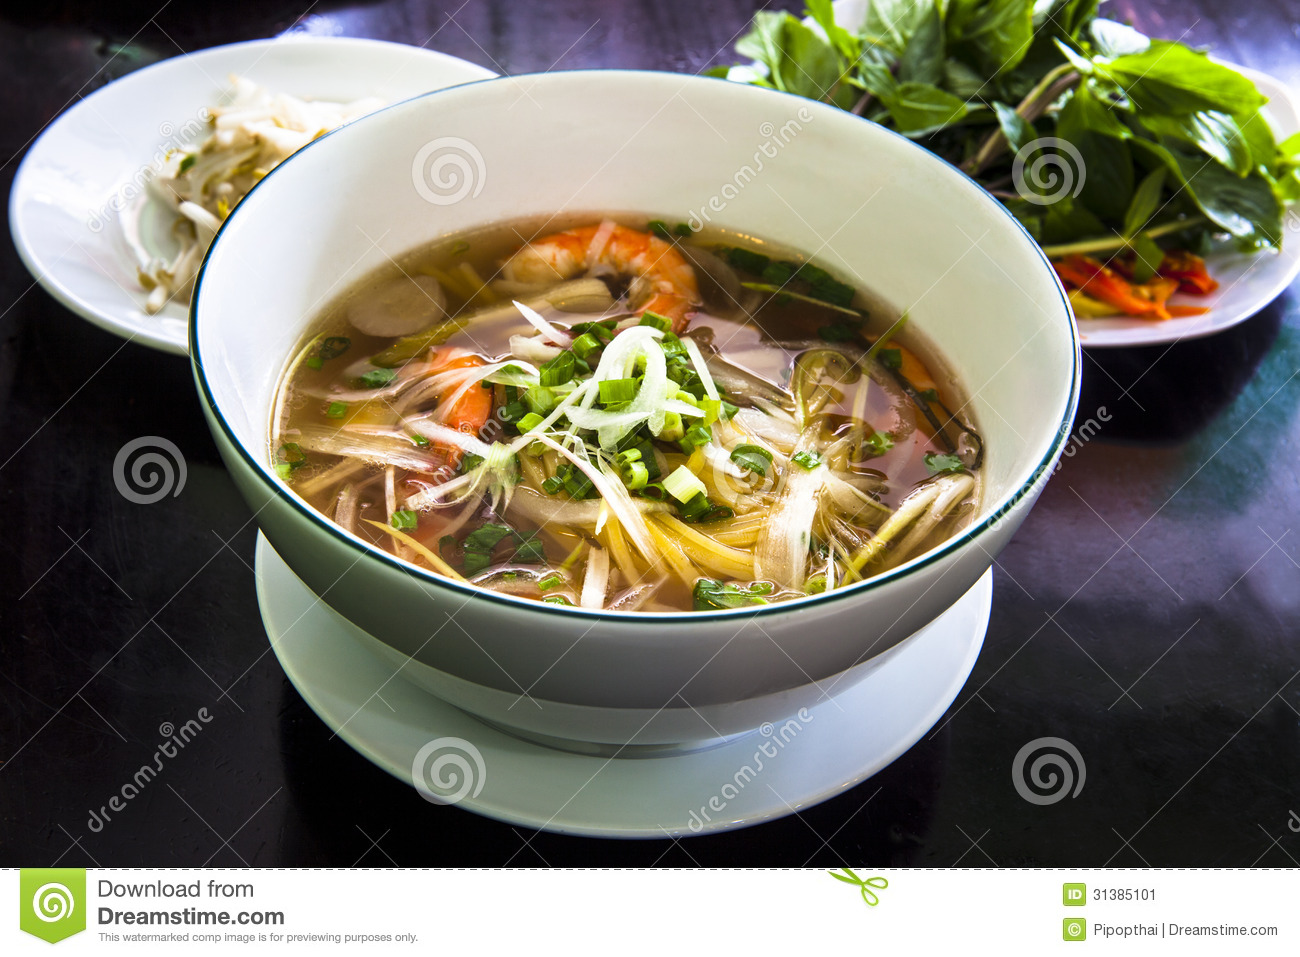 Pho Is A Vietnamese Noodle Soup Consisting Of Broth Linguine Shaped